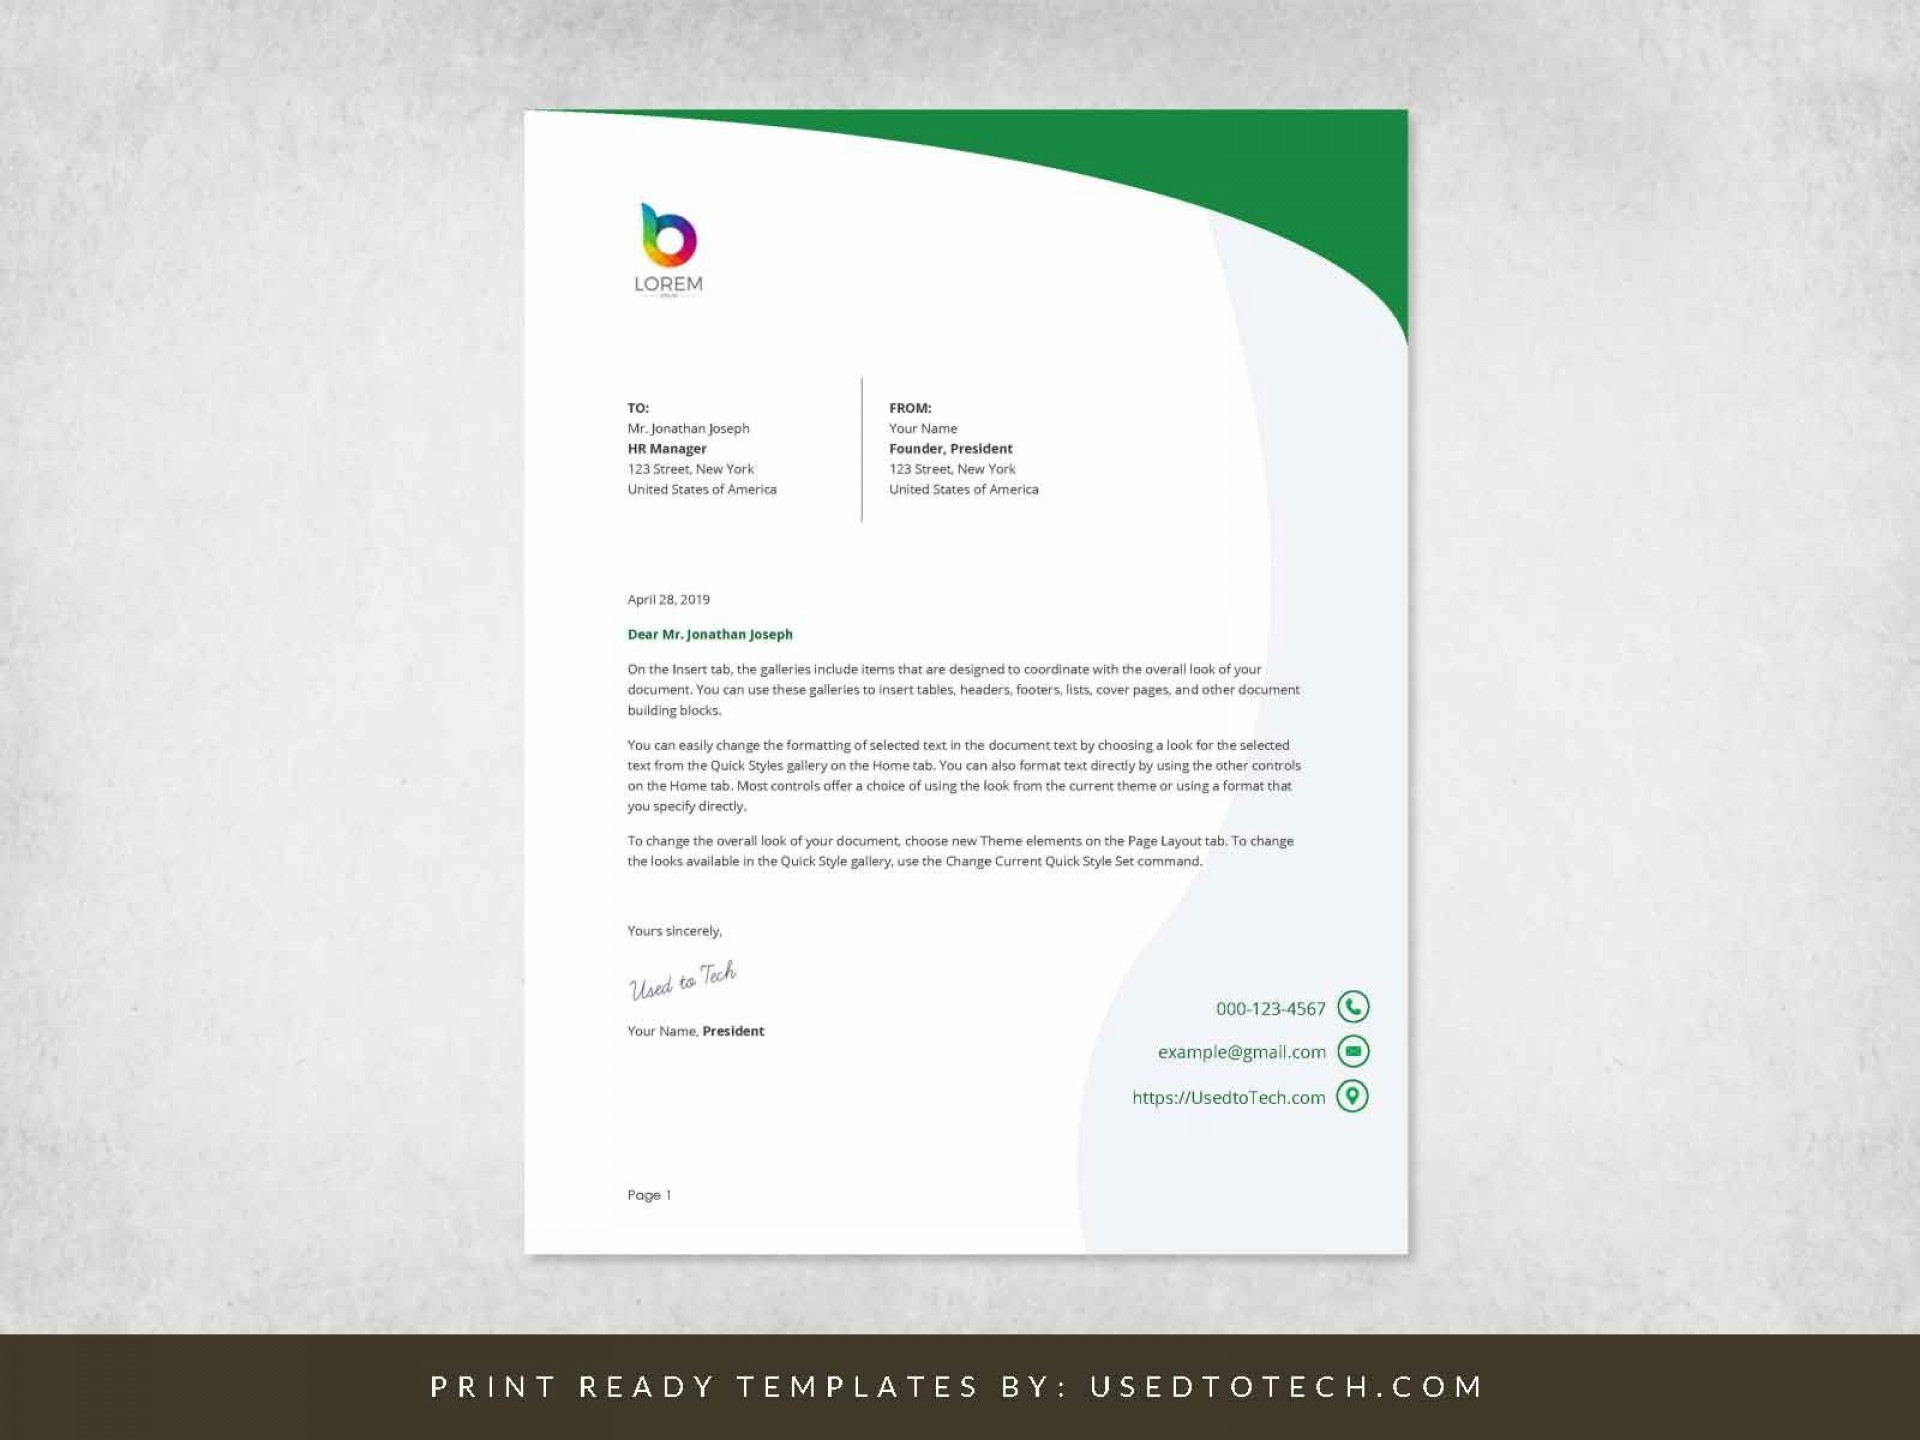 000 Simple Letterhead Template Free Download Word Highest Clarity  Microsoft Format In Personal Red1920